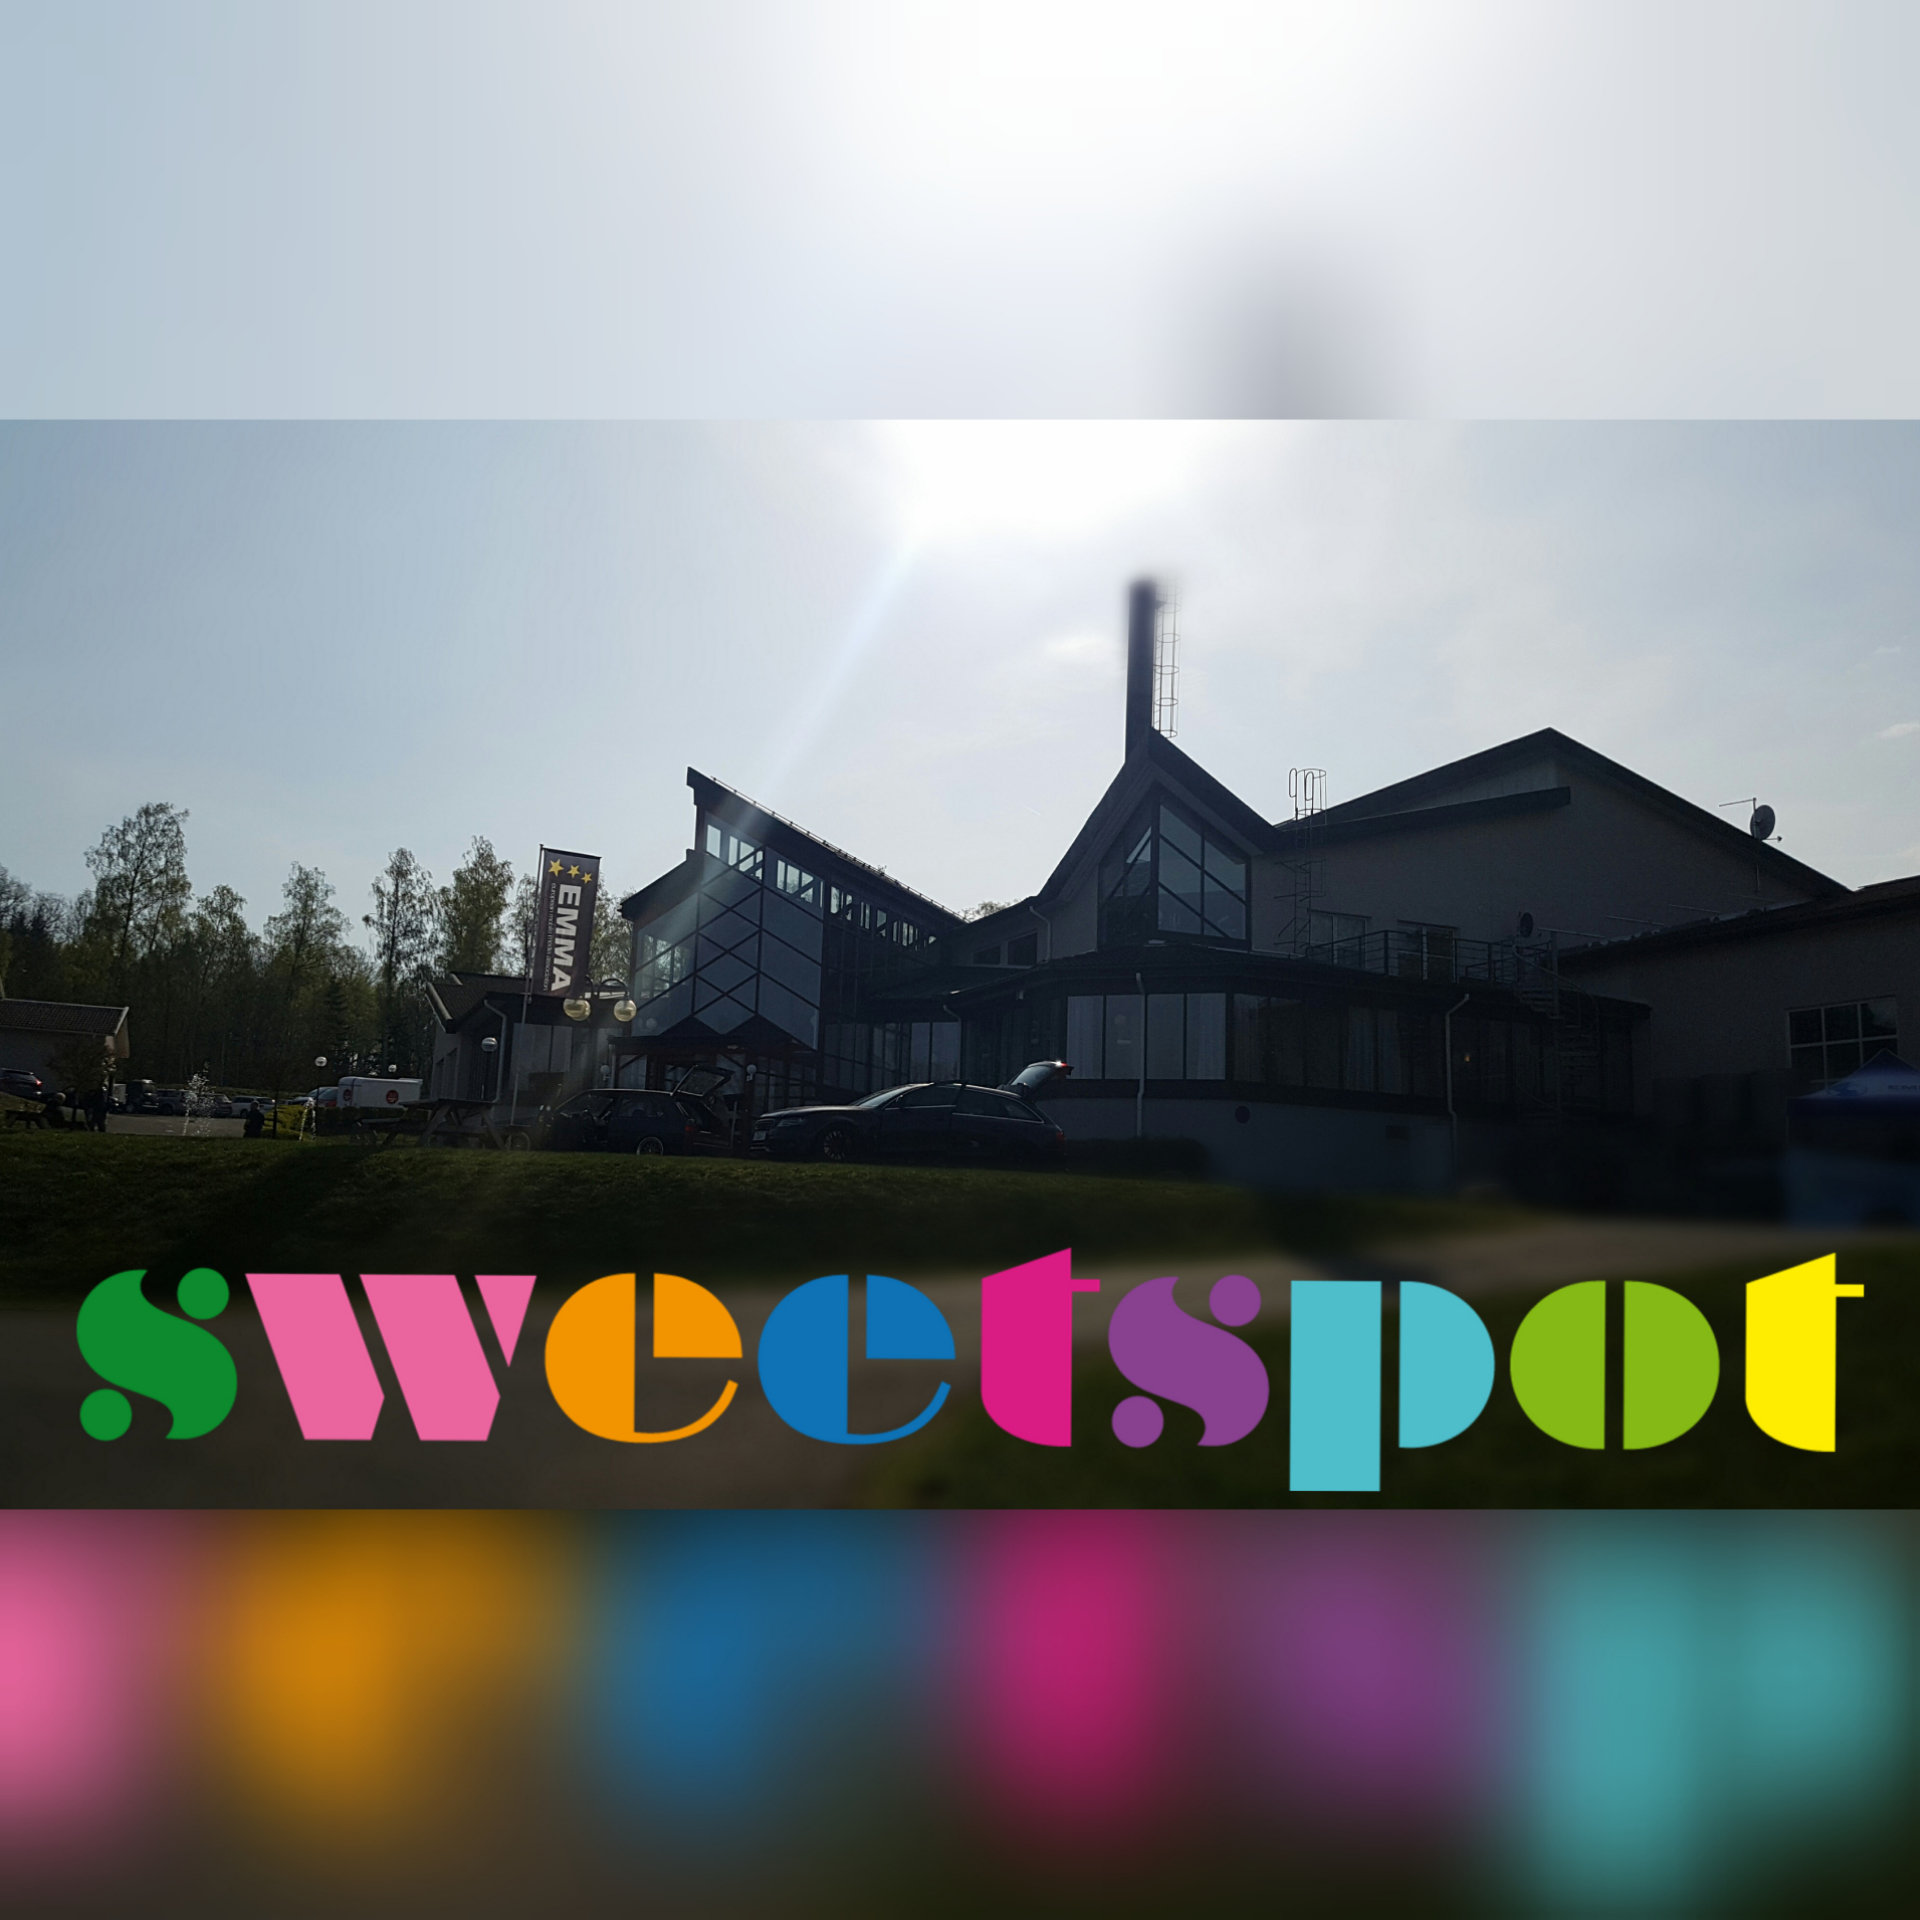 Sweetspot. En messe i Jönkjöping.